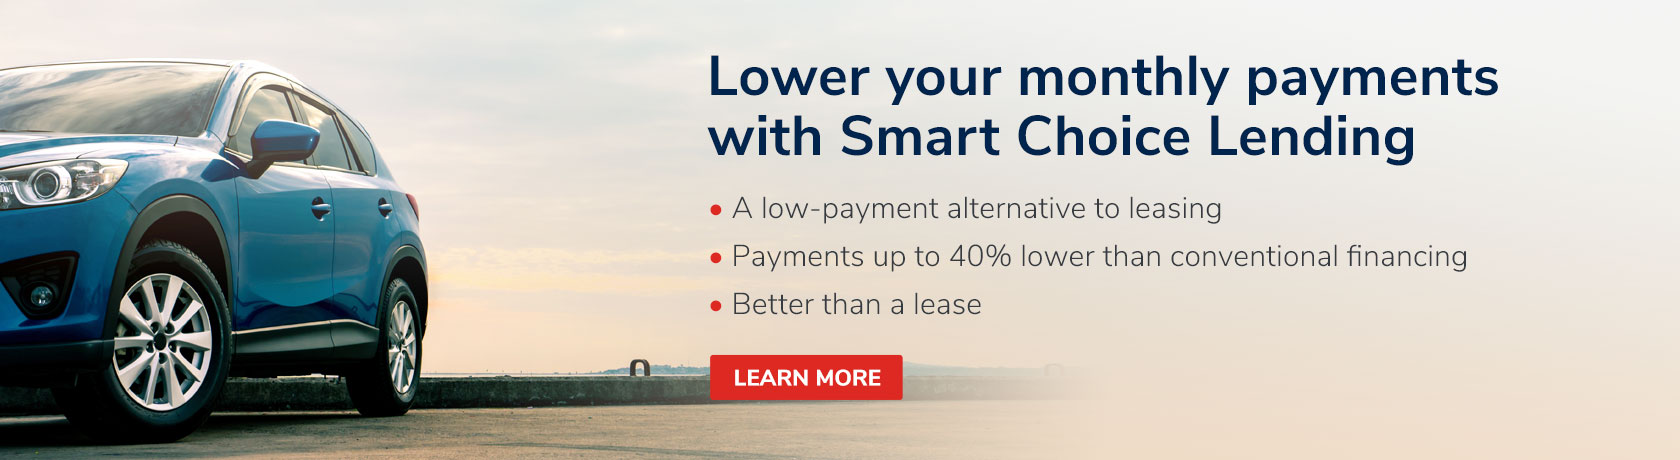 Lower your monthly Payments with Smart Choice Lending. A low-payment alternative to leasing. Payments up to 40% lower than conventional financing. Better than a lease. Learn More